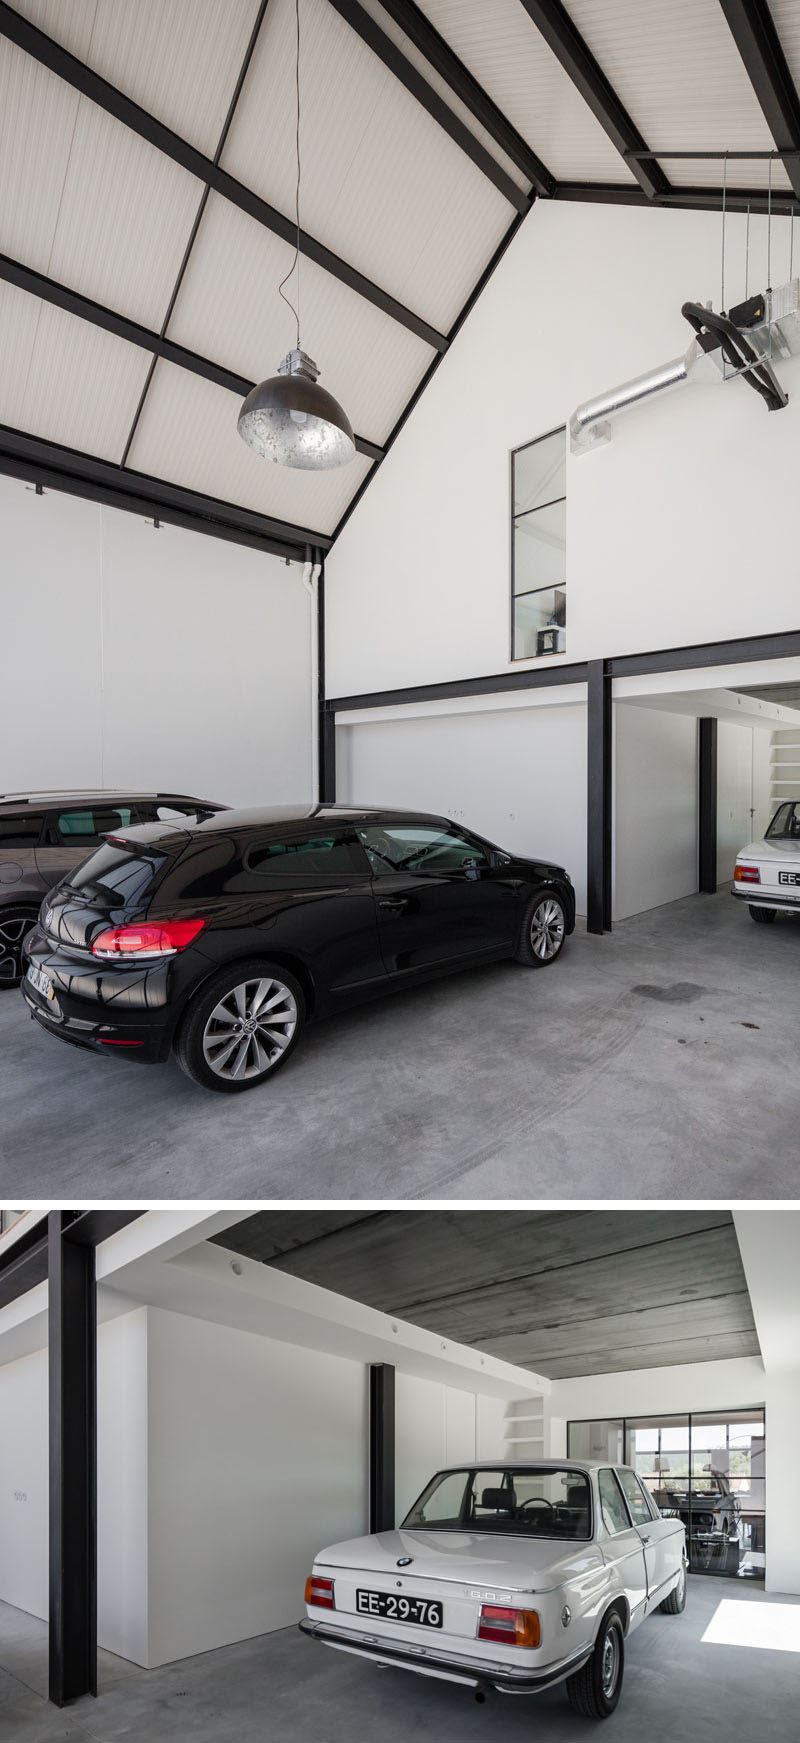 This modern house has a large garage with a hitch ceiling and enough room for four cars. #Garage #Architecture #ModernHouse